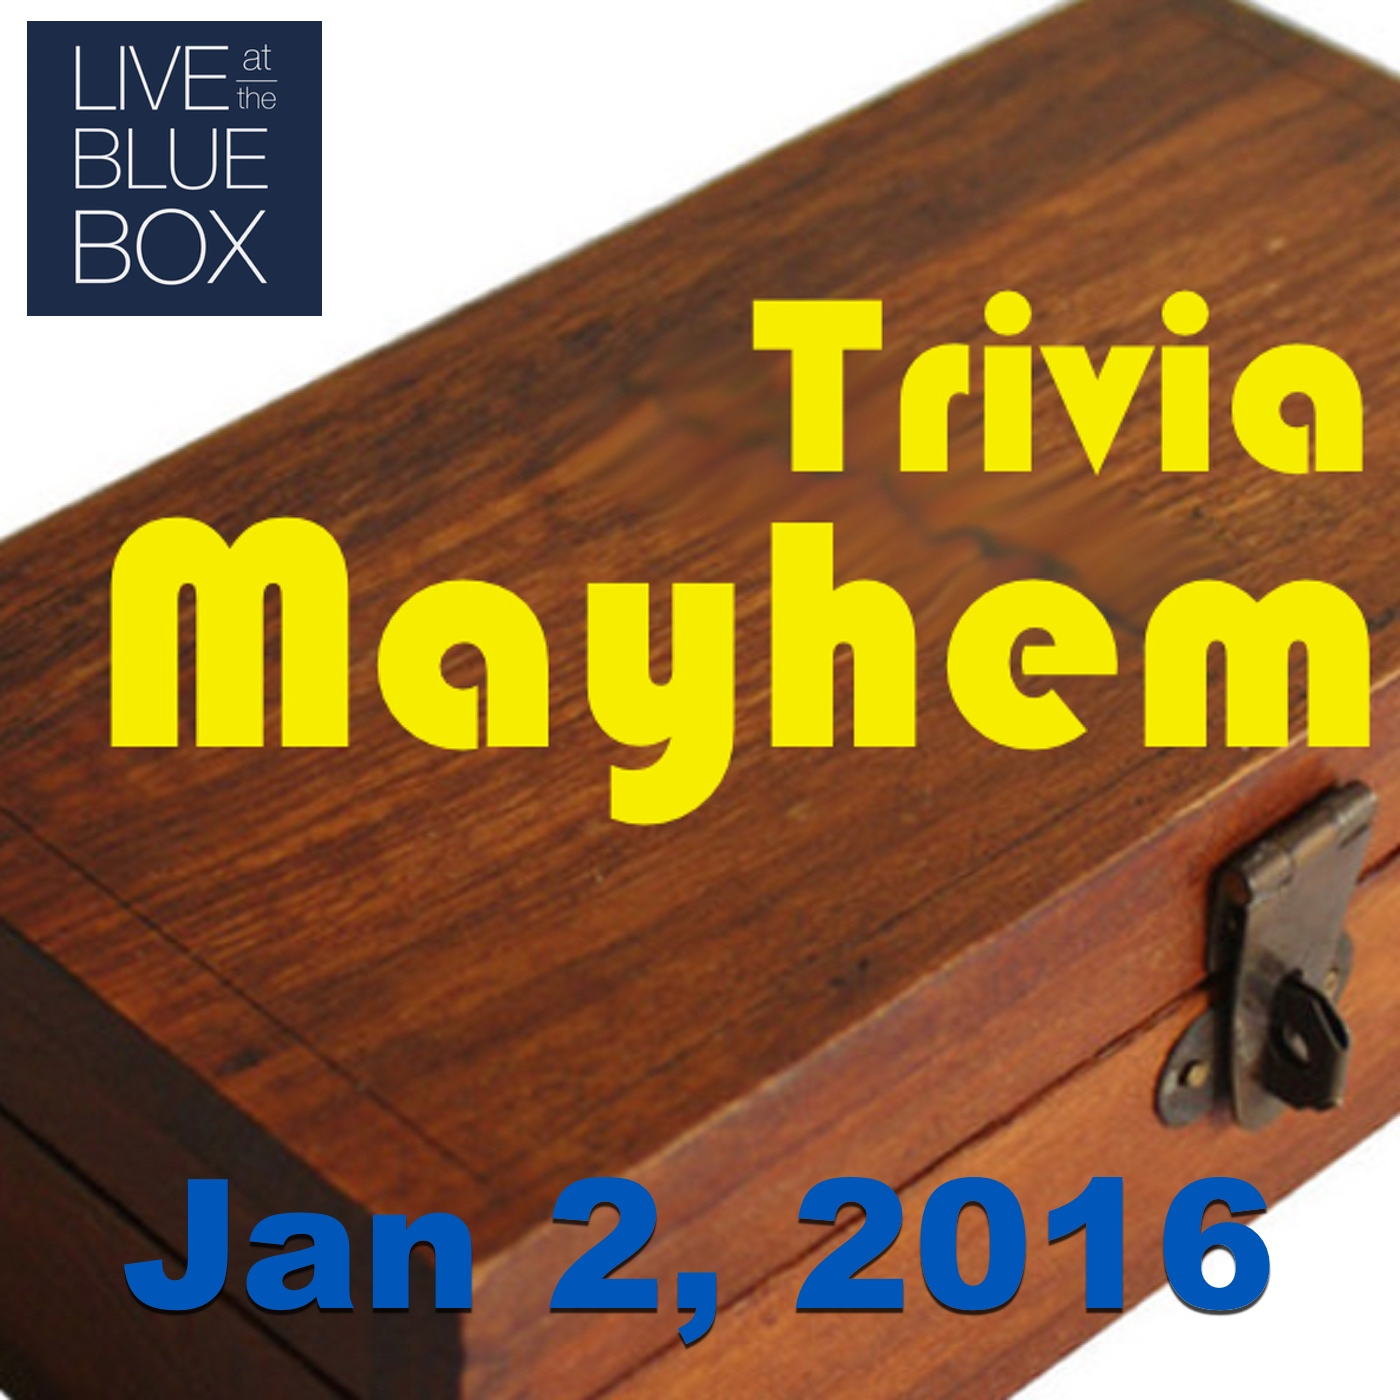 Trivia Mayhem 1-2-16 Live at the Blue Box